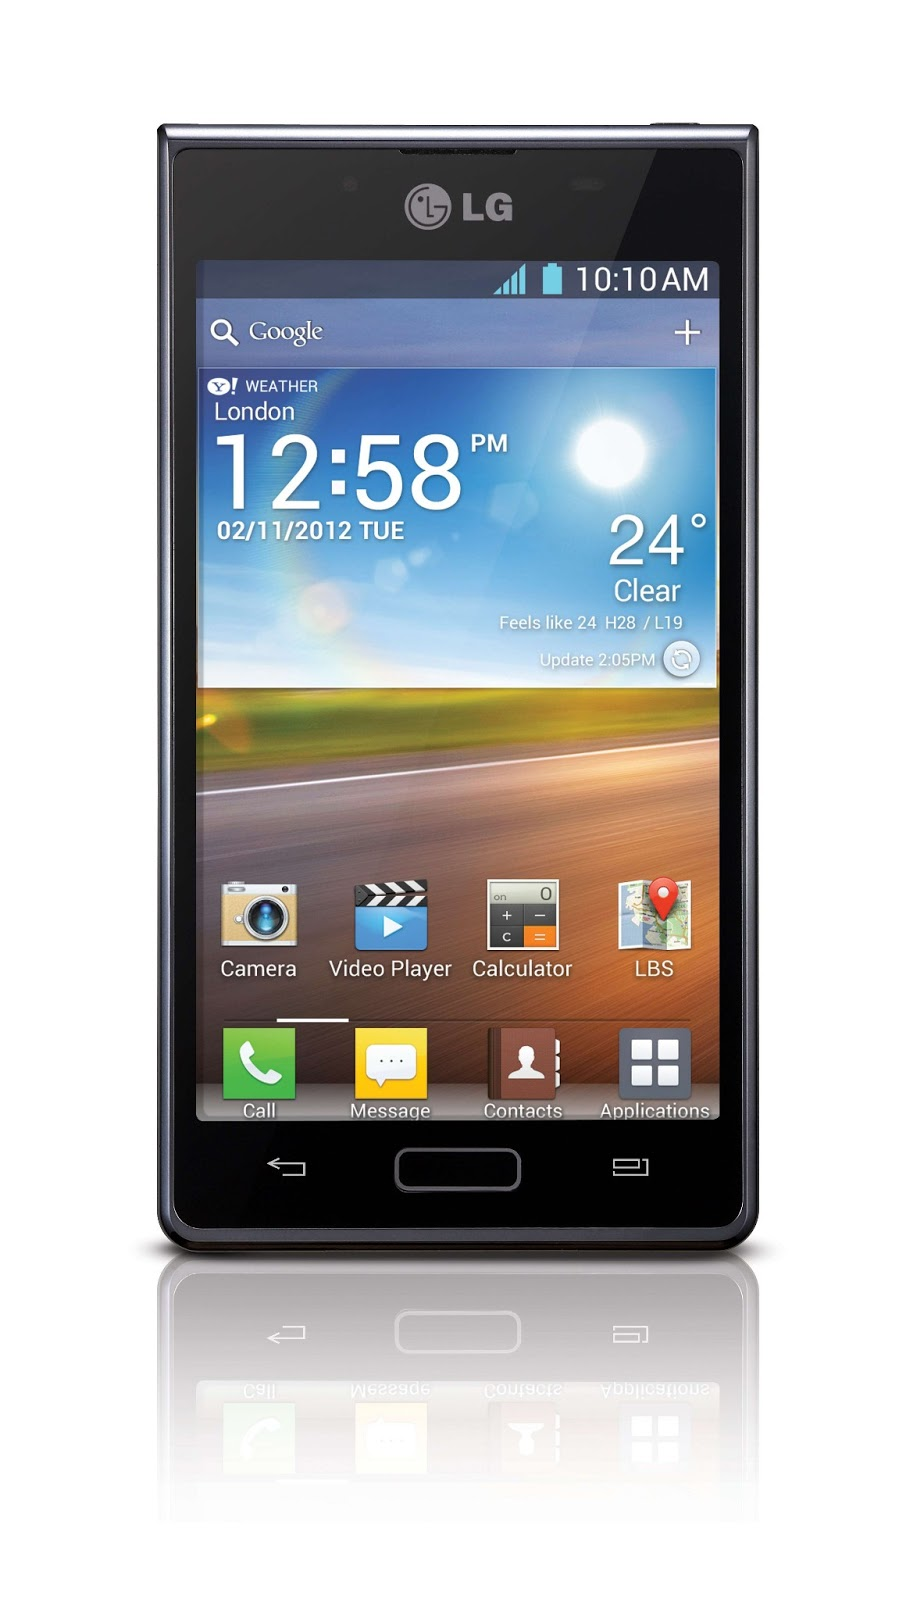 lg mobile Latest lg mobile phones prices in pakistan (islamabad, lahore & karachi) - price and specifications of new smartphones with advance technology and design buy 3g, 4g, dual sim mobile phone at best price in pakistan.